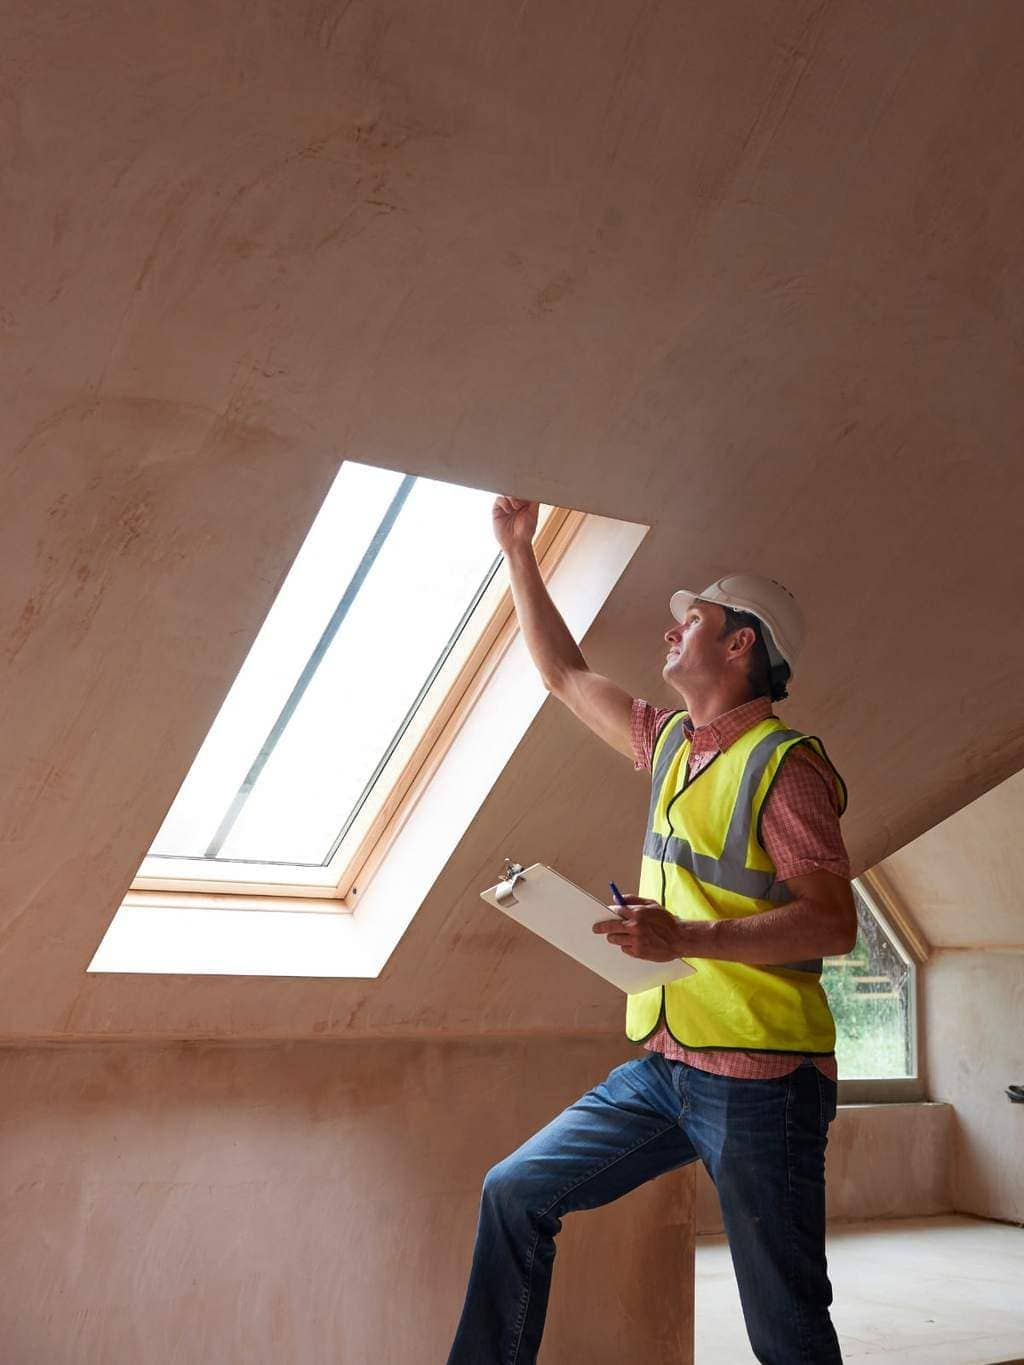 Having Your New Home Inspected by a Home Inspector